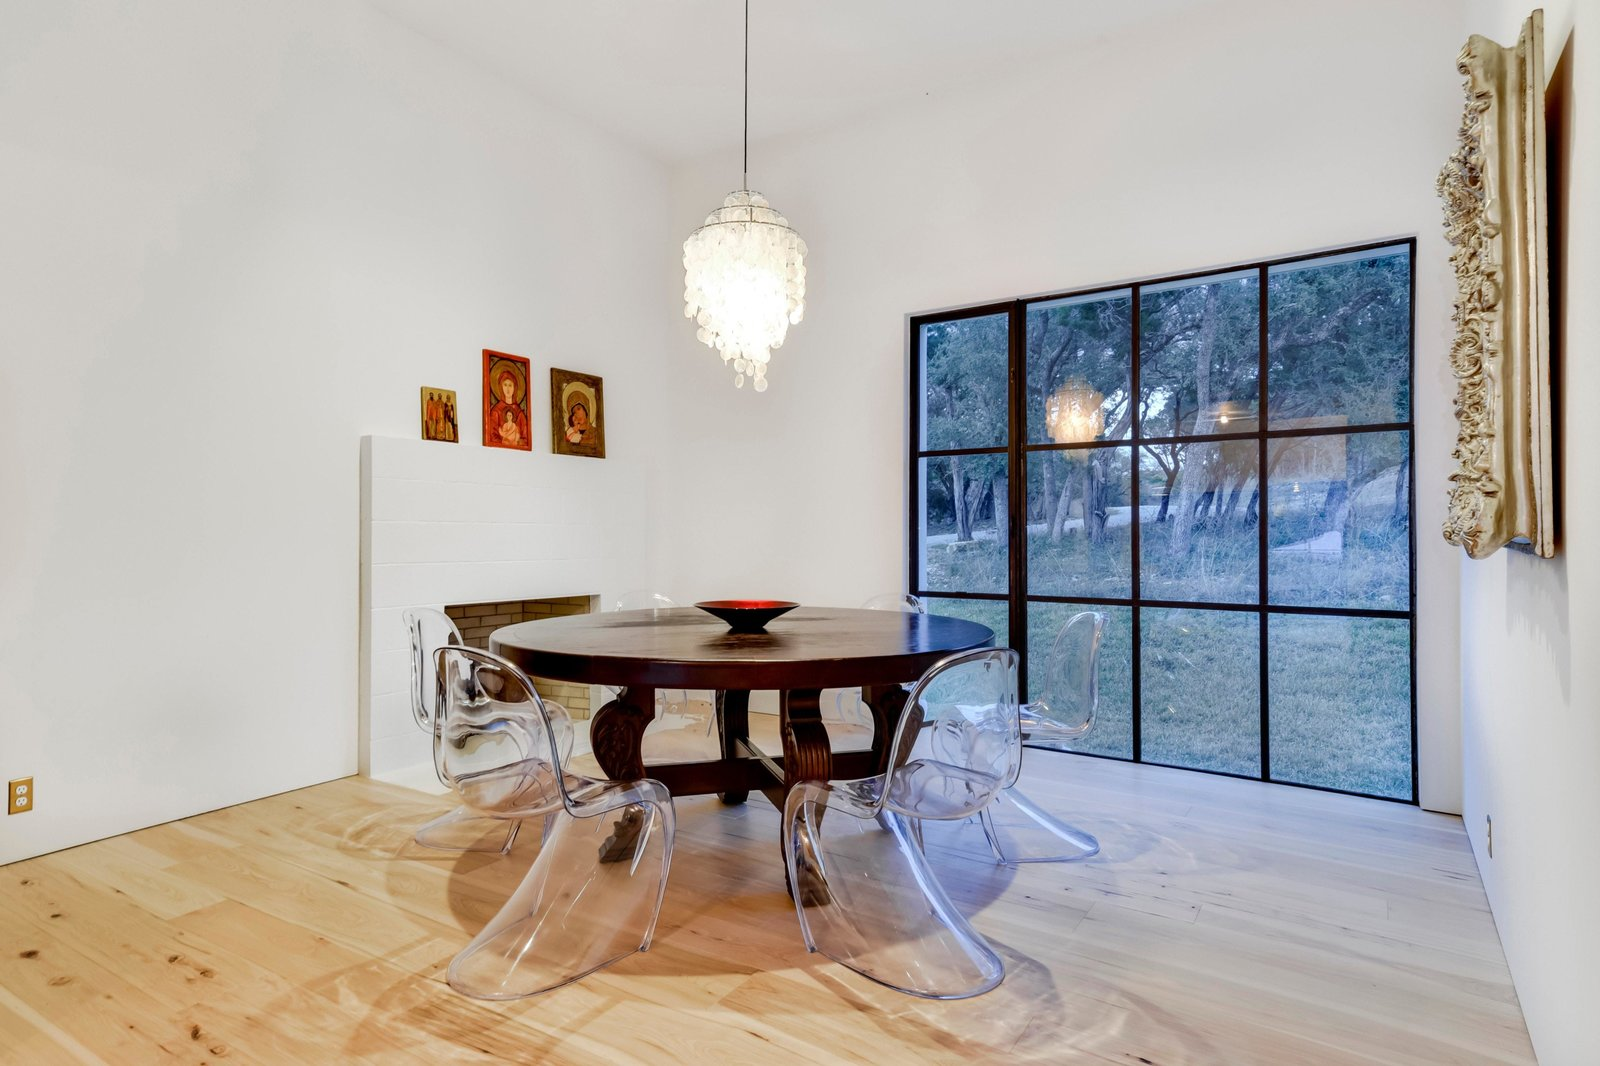 Dining, Table, Medium Hardwood, Chair, Pendant, and Standard Layout The dining area overlooks the yard.  Best Dining Medium Hardwood Standard Layout Pendant Photos from Own This Alluring Sculptural Abode in Austin For $3.1M